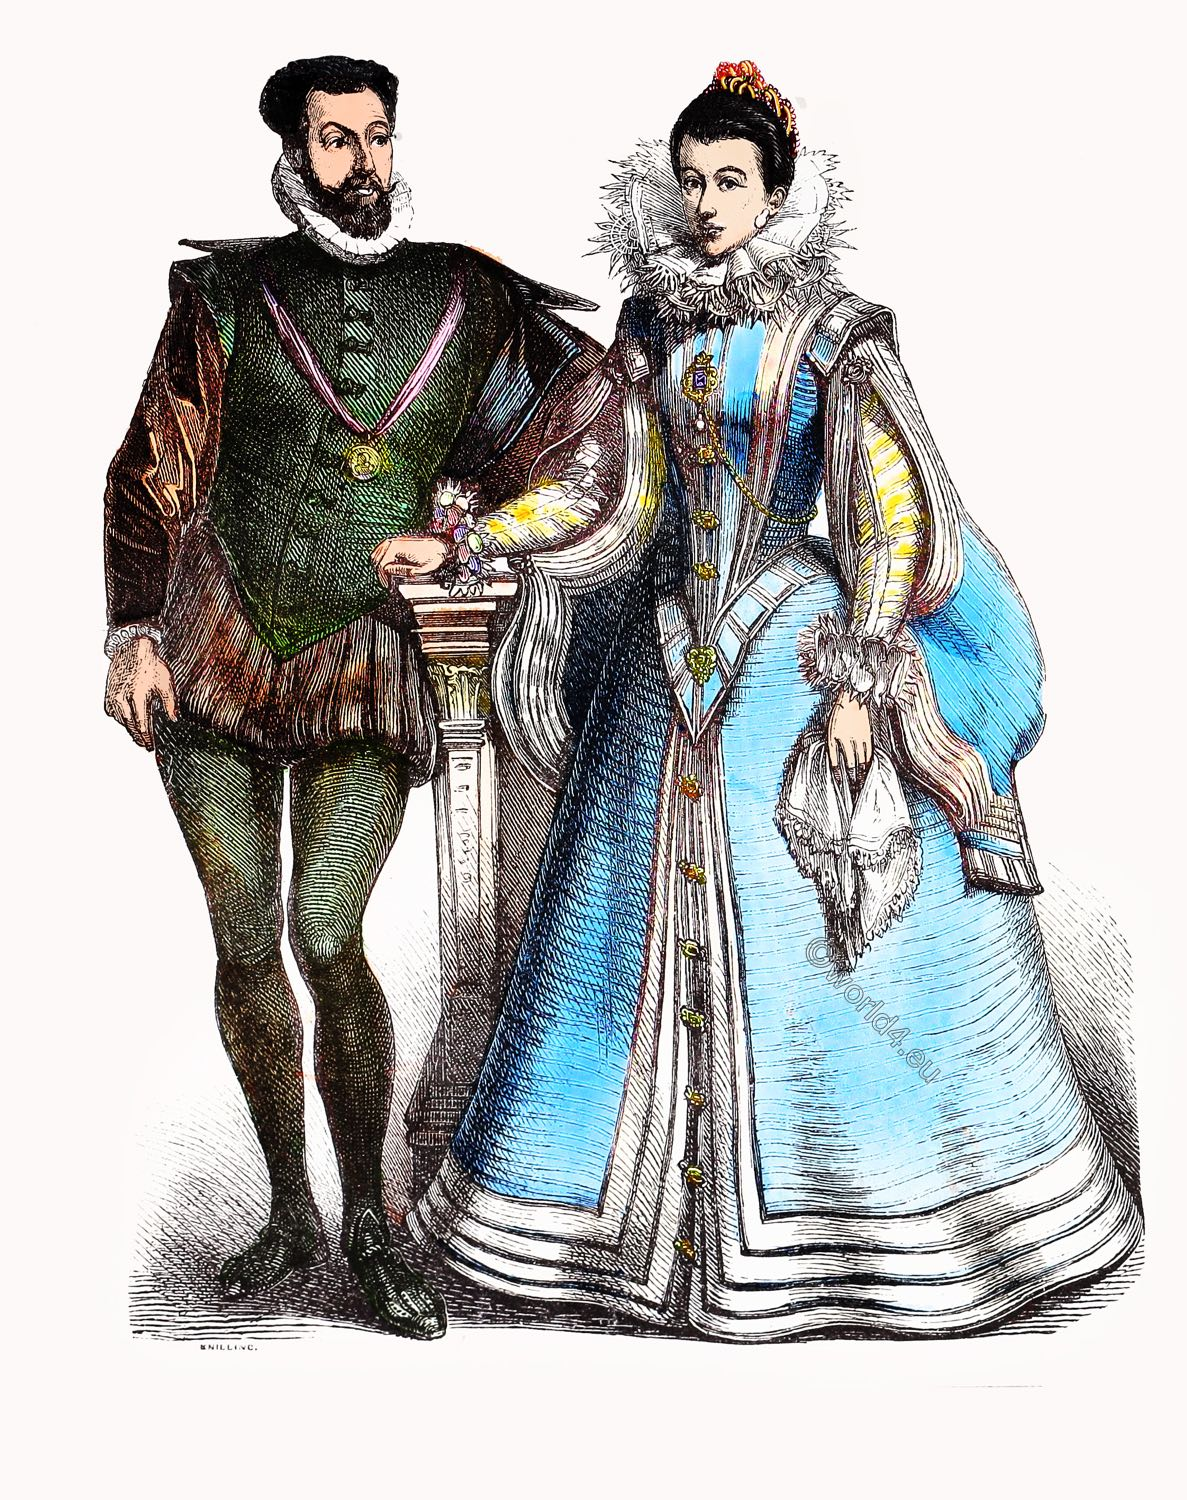 Renaissance, court, Spanish, clothing, fashion, costumes, baroque,